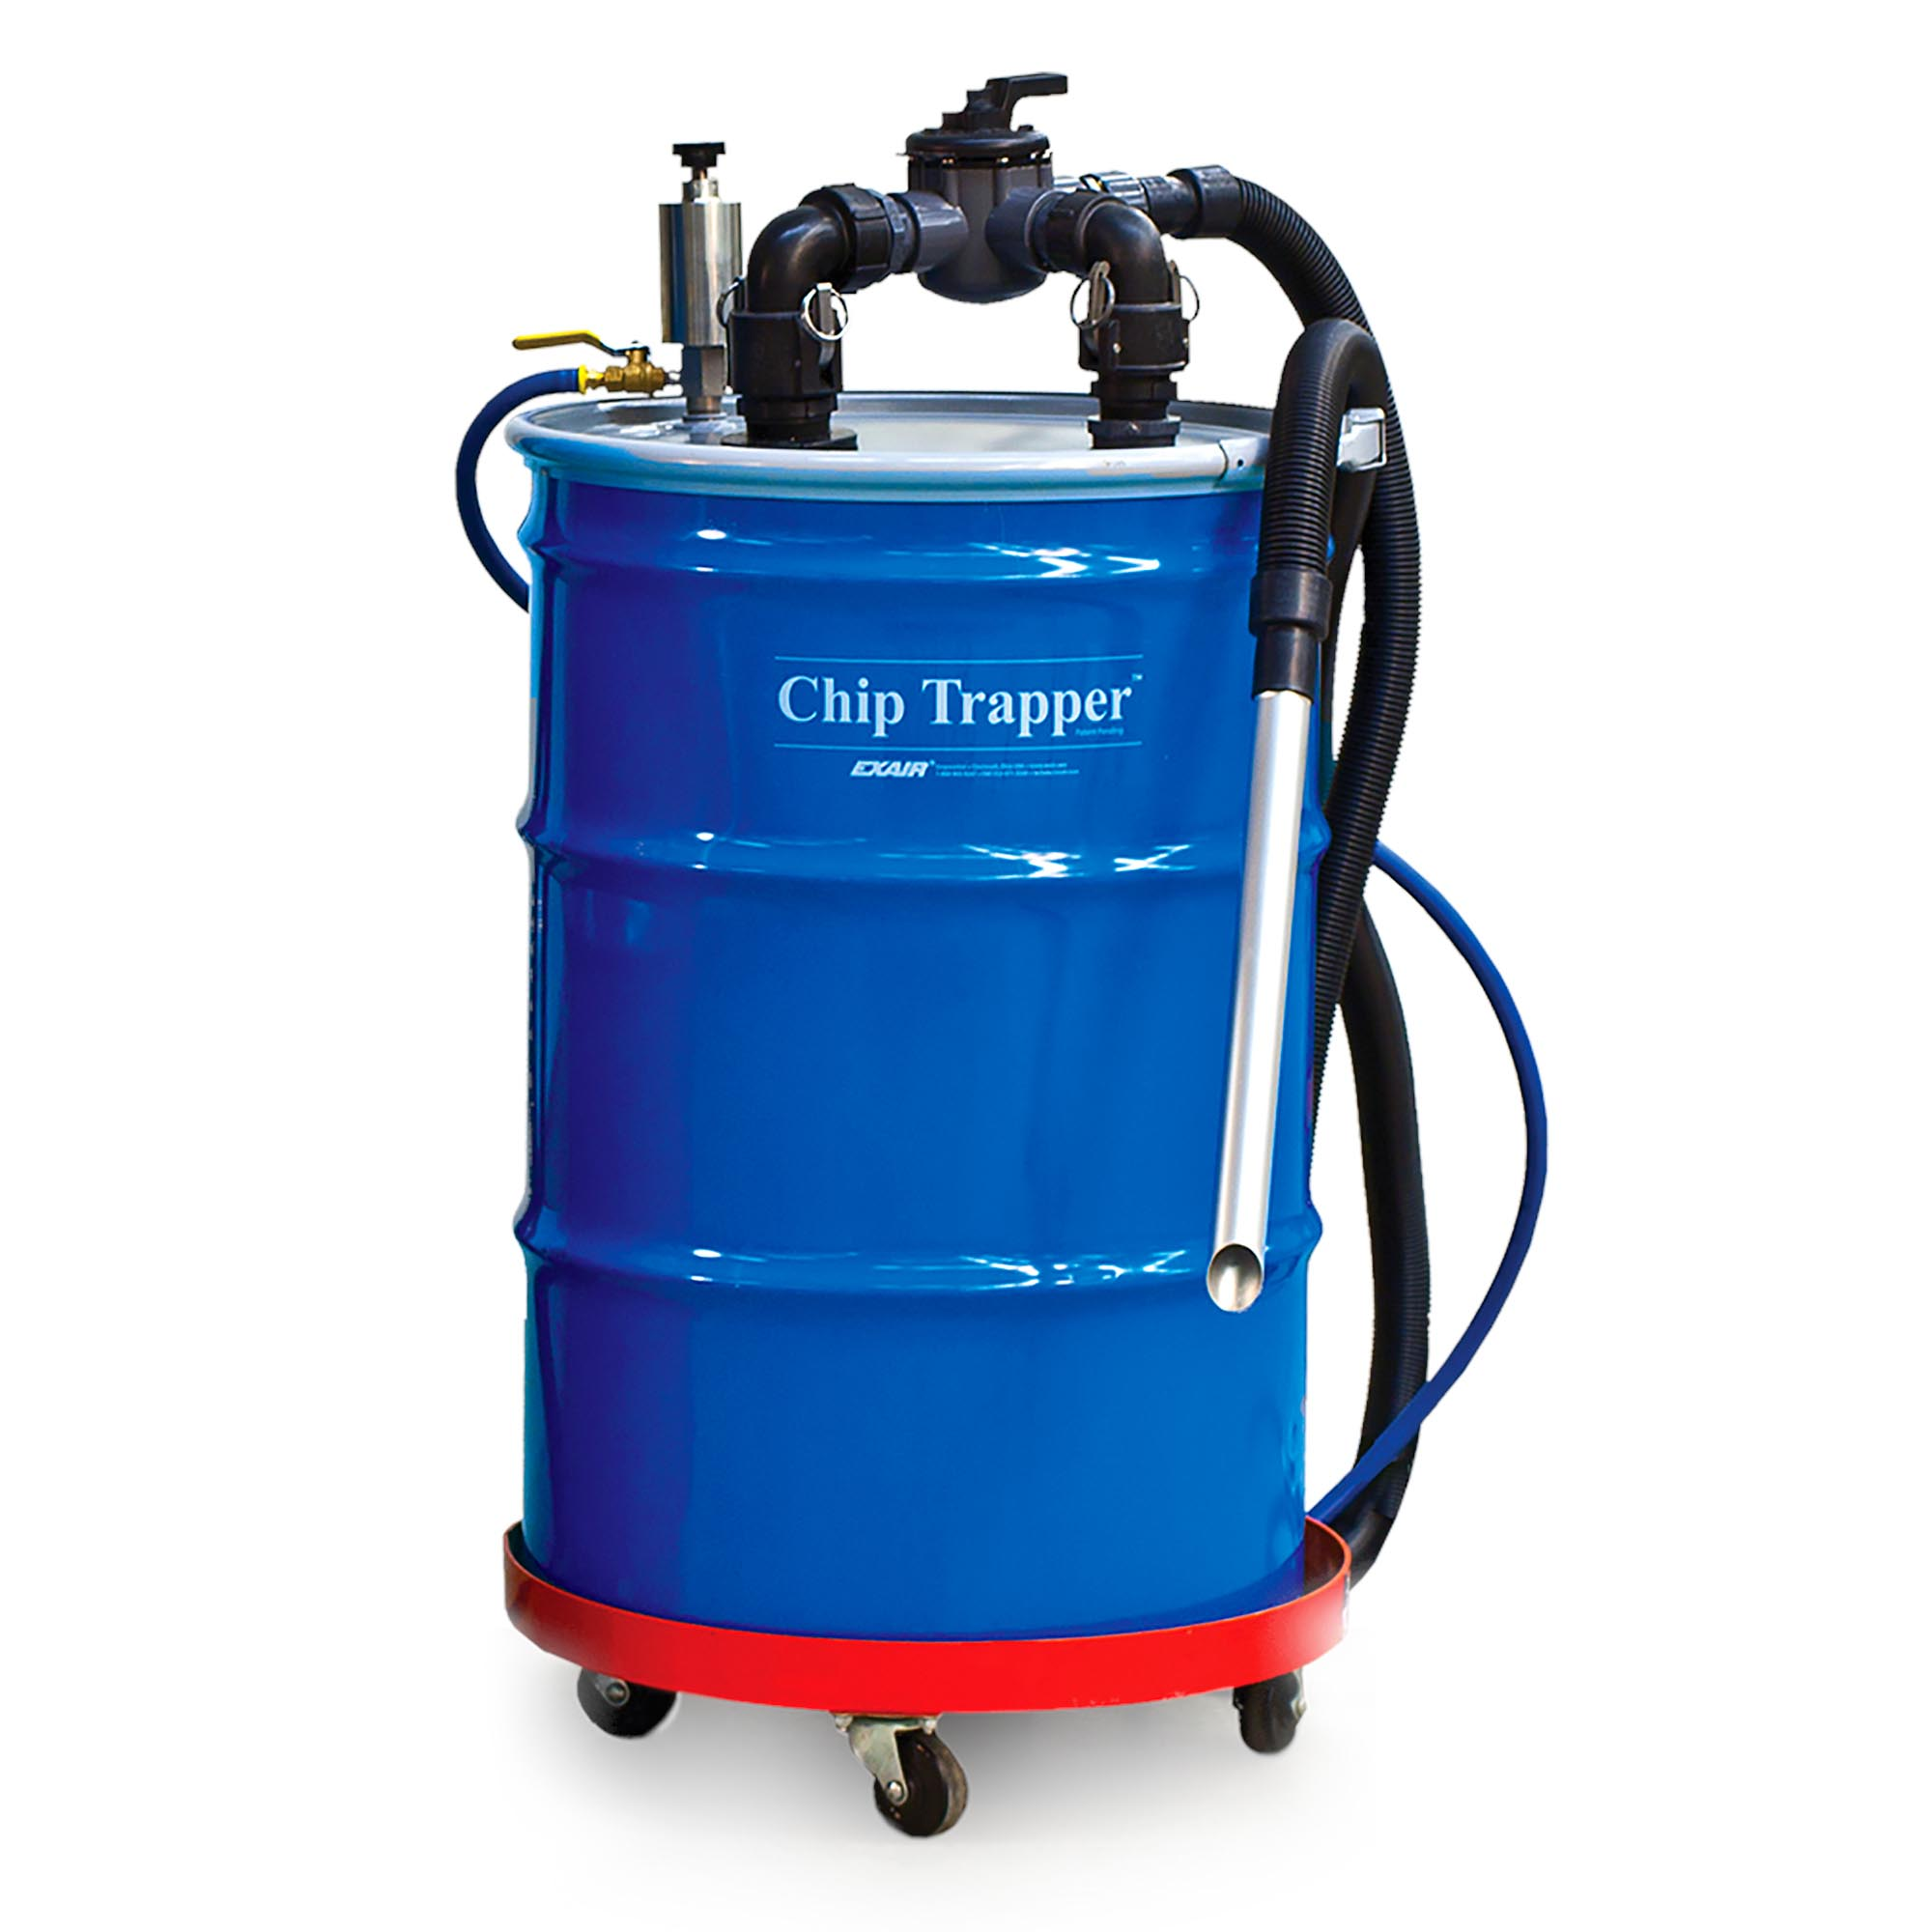 Model 6198 55 Gallon Chip Trapper System